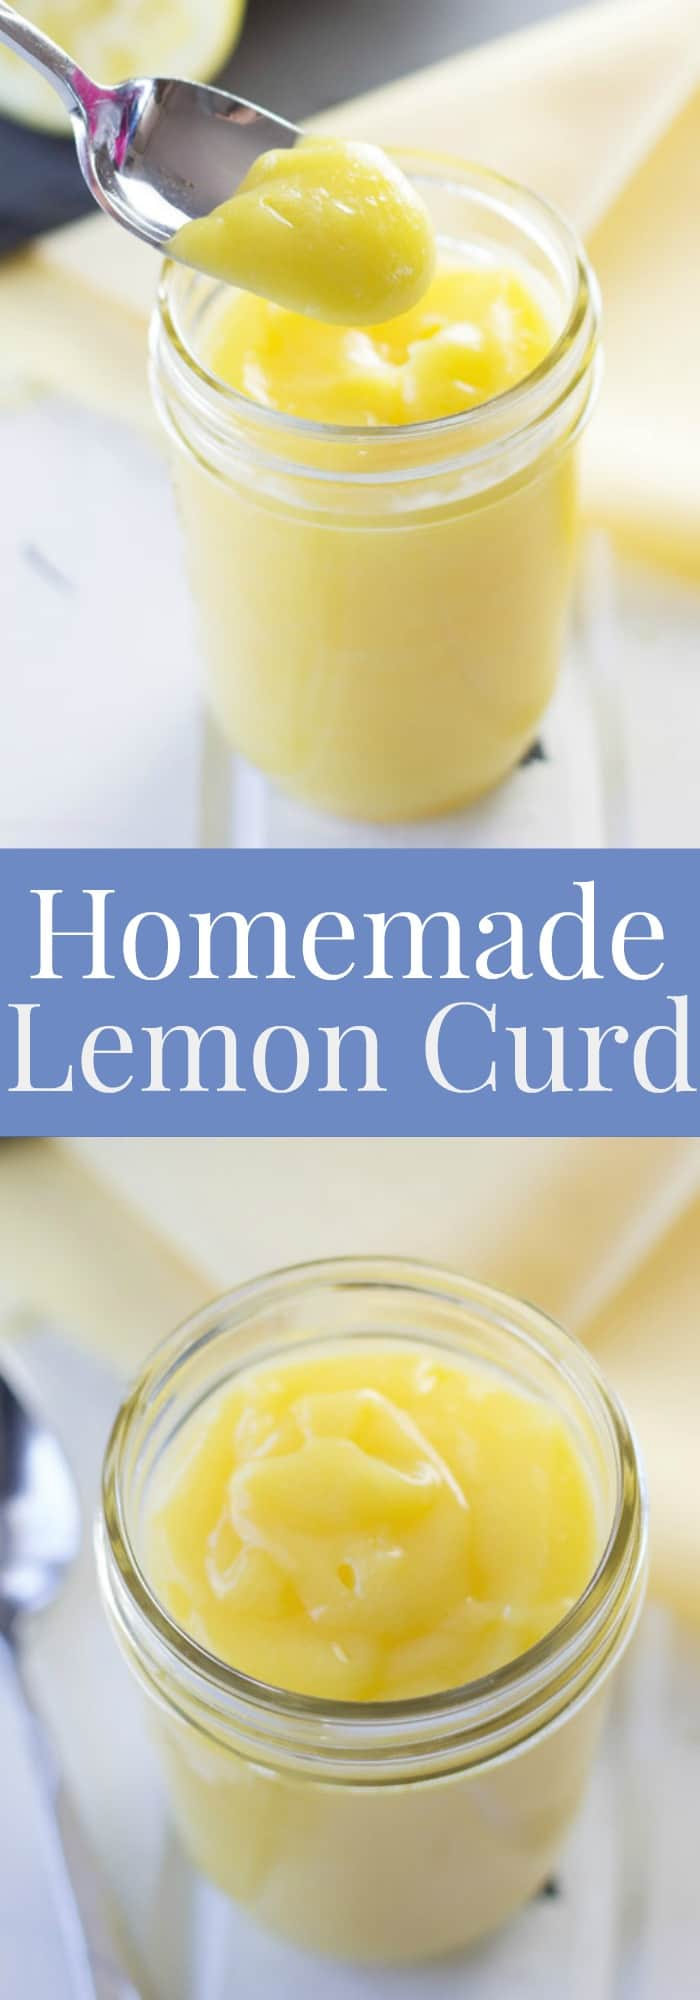 A quick and easy recipe for thick and luscious homemade Lemon Curd! | www.countrysidecravings.com